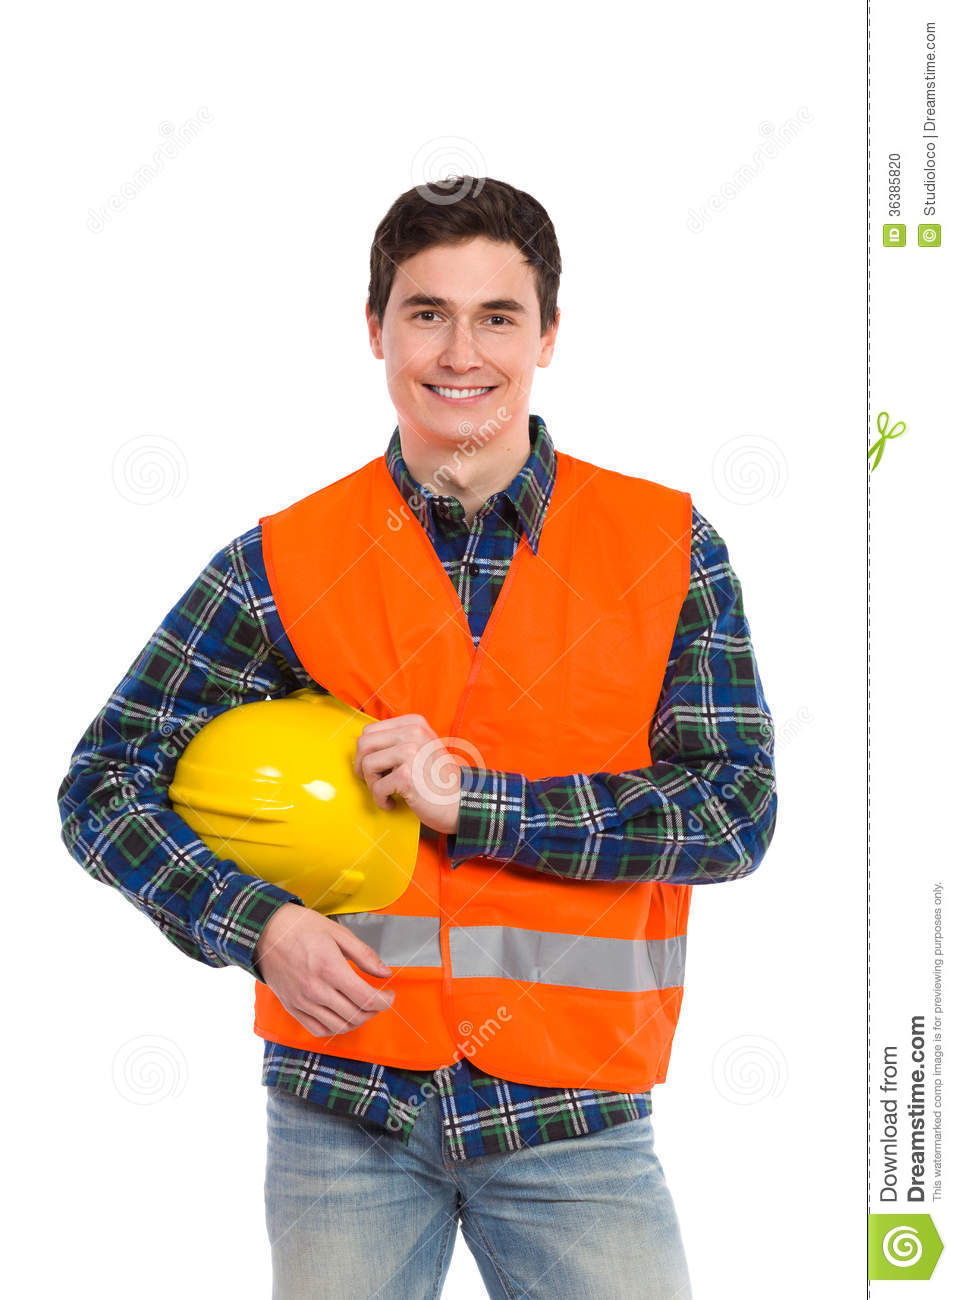 Engineer Wearing Reflective Clothing Stock Photo Image